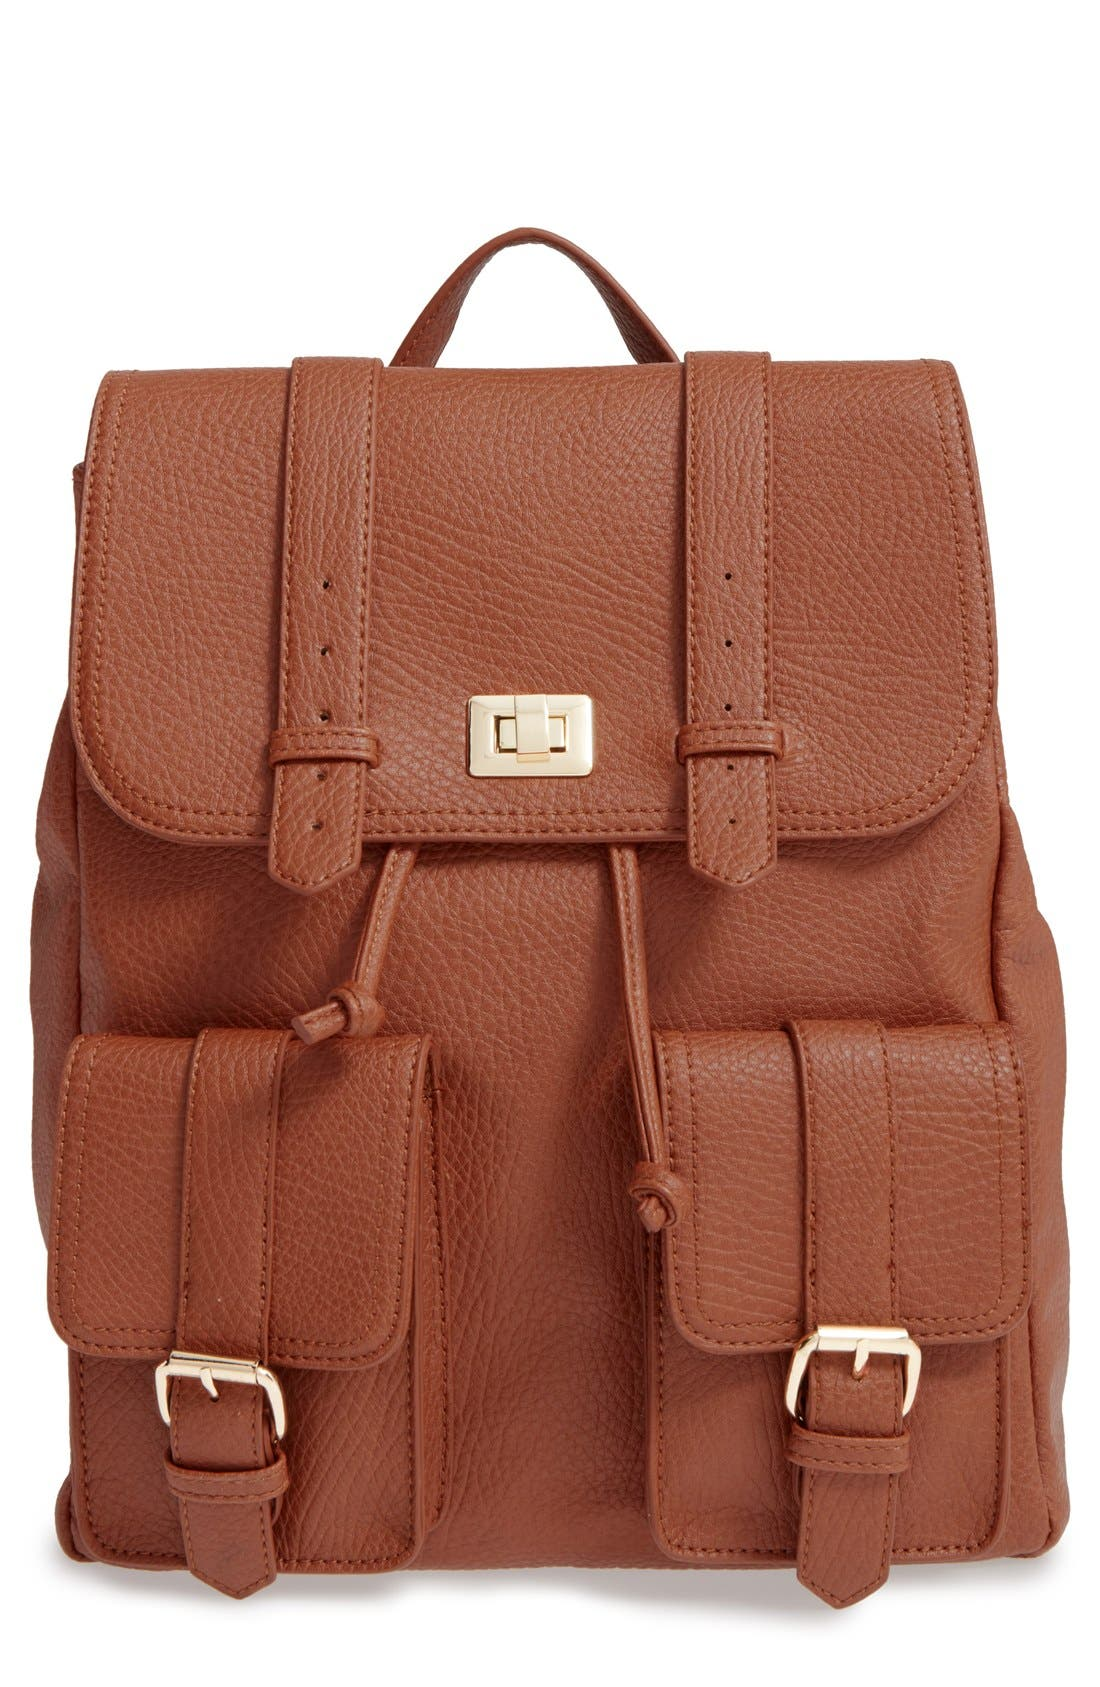 Main Image - Sole Society 'Shaw' Faux Leather Backpack